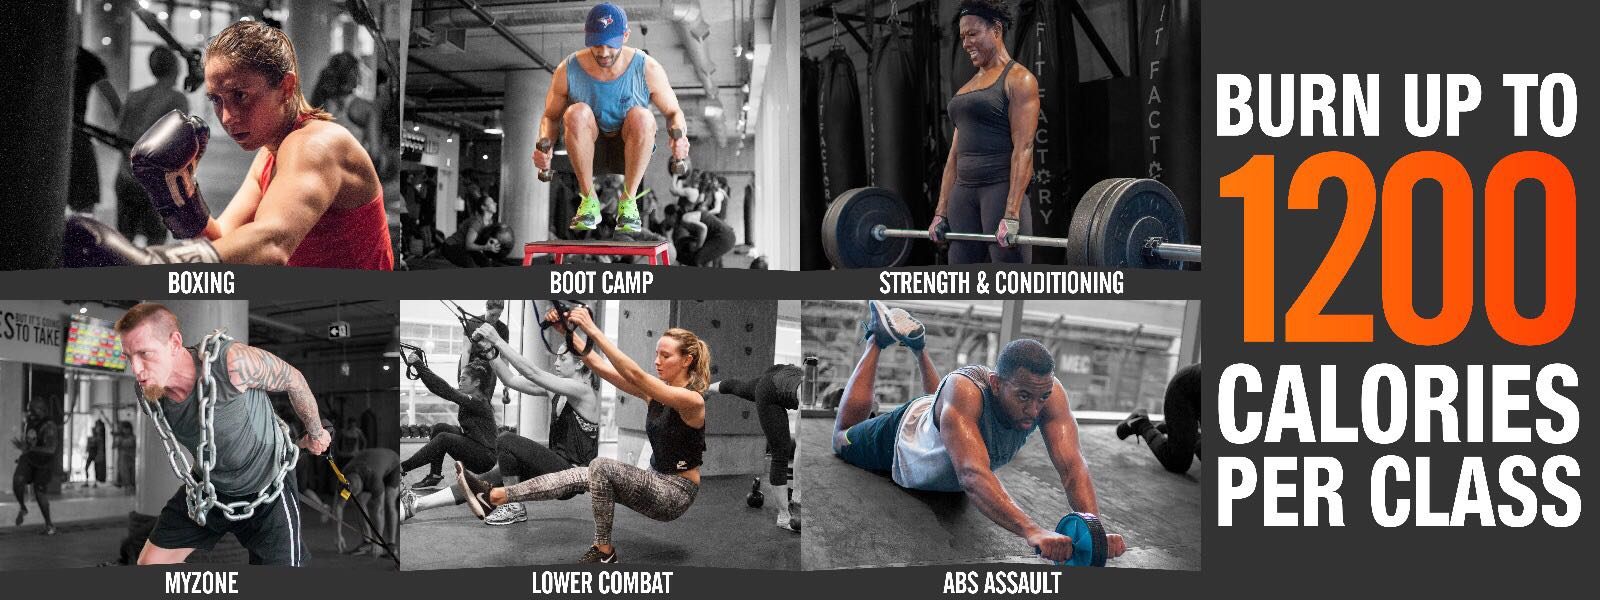 Fit Factory Fitness Toronto Gym Boot Camp Classes